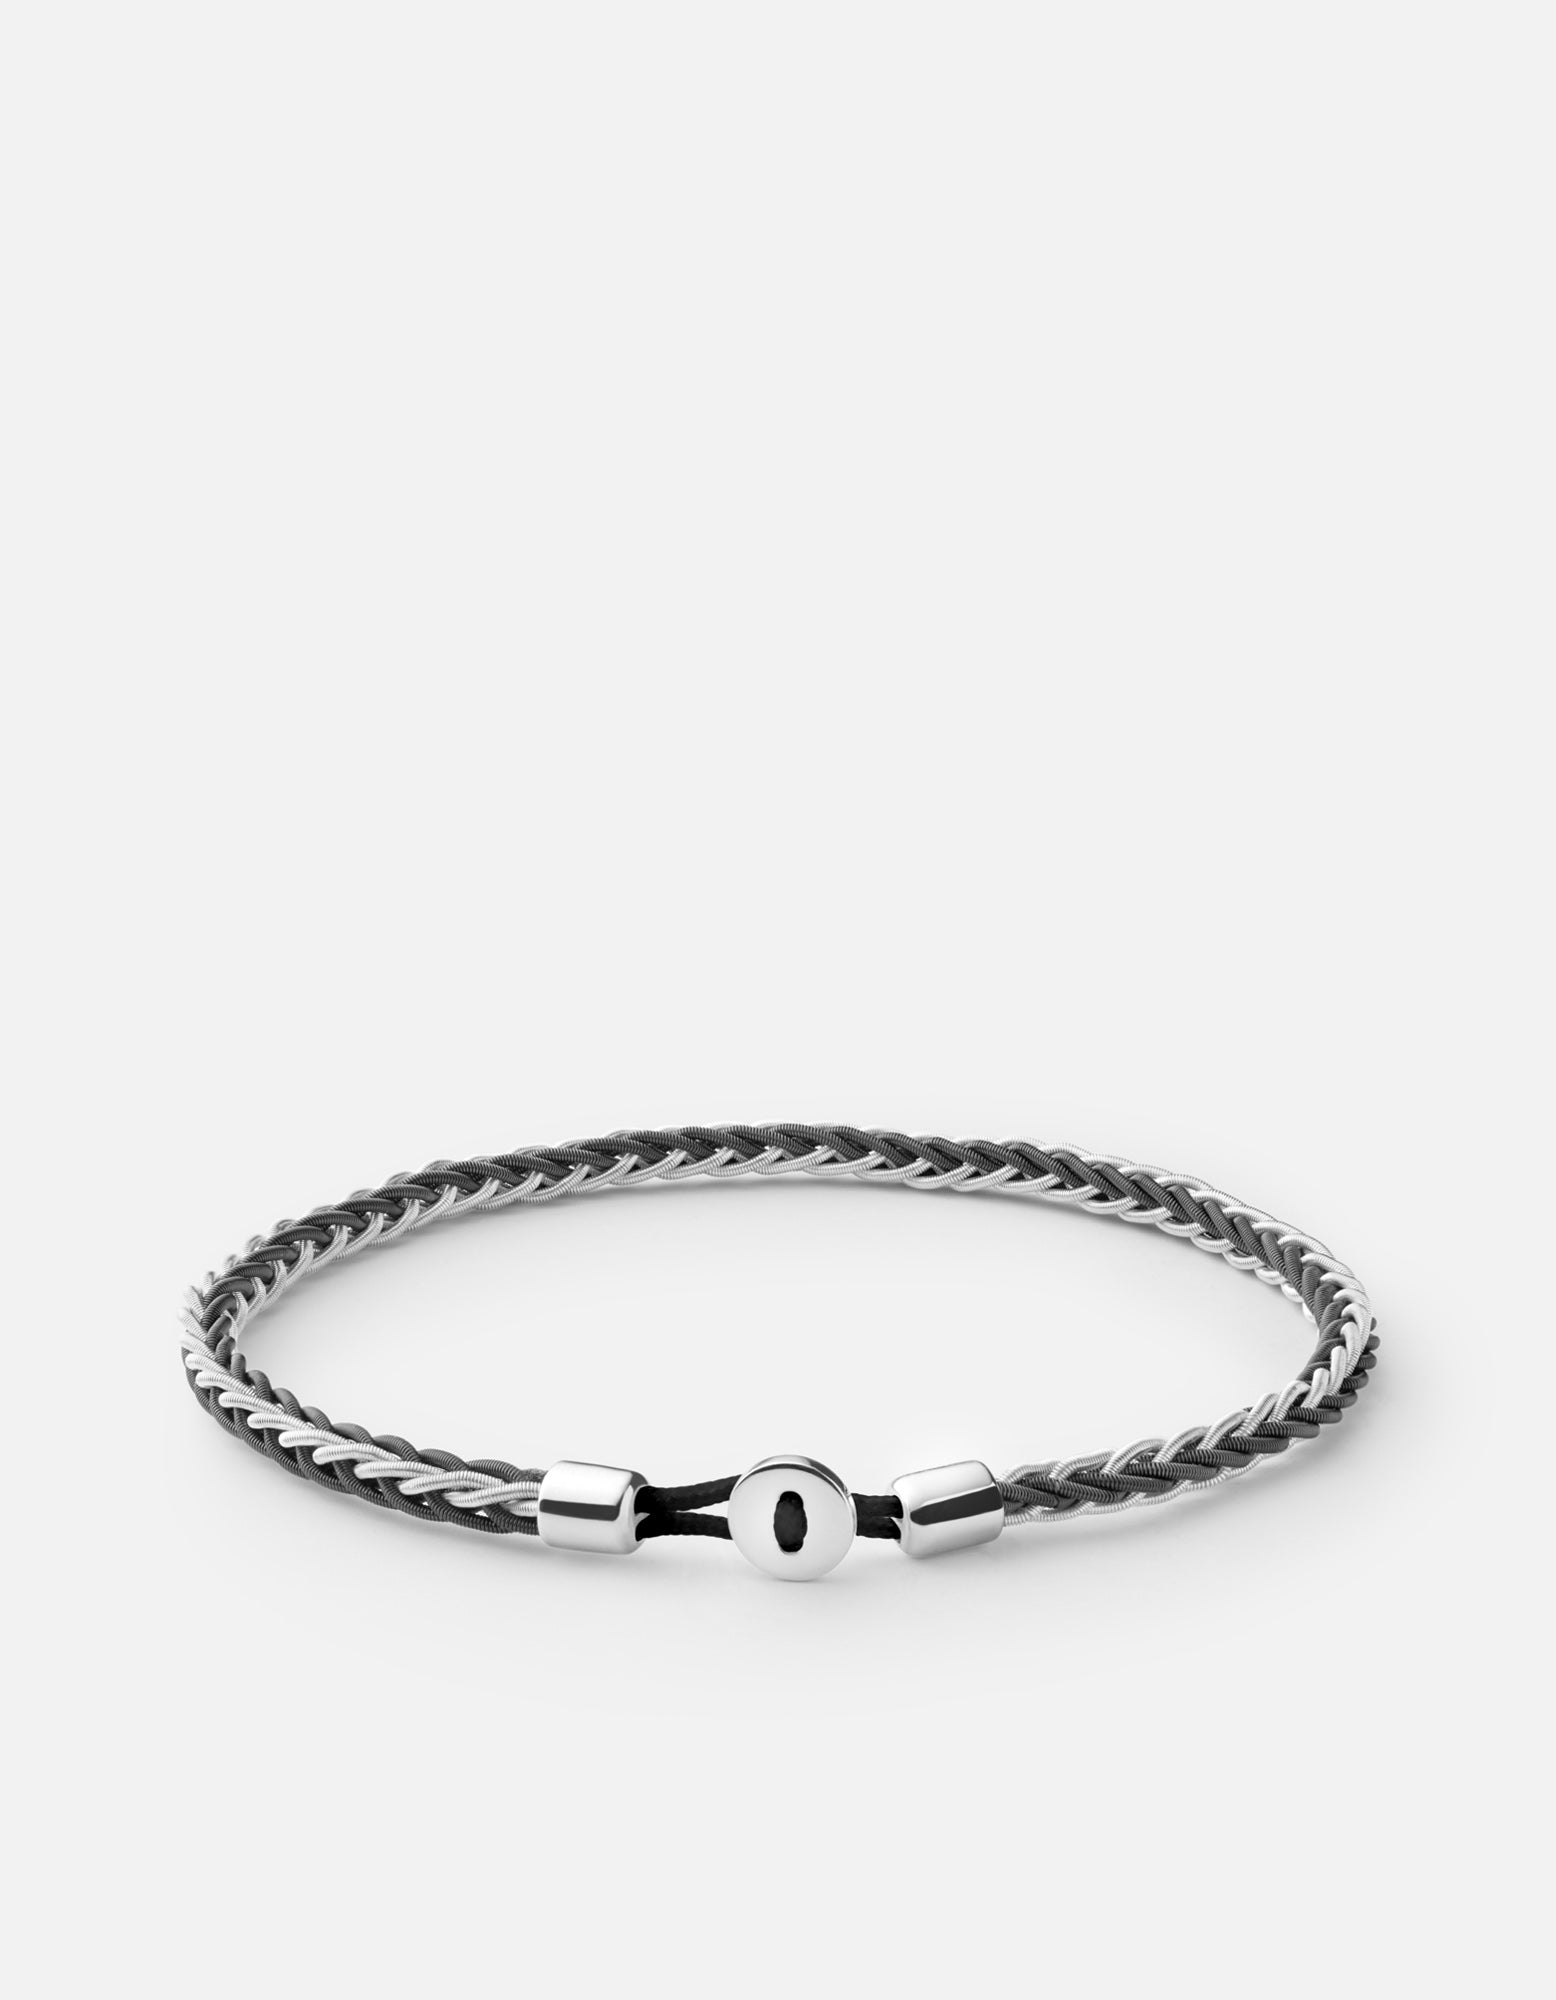 Nexus Wire Steel bracelet- New item !